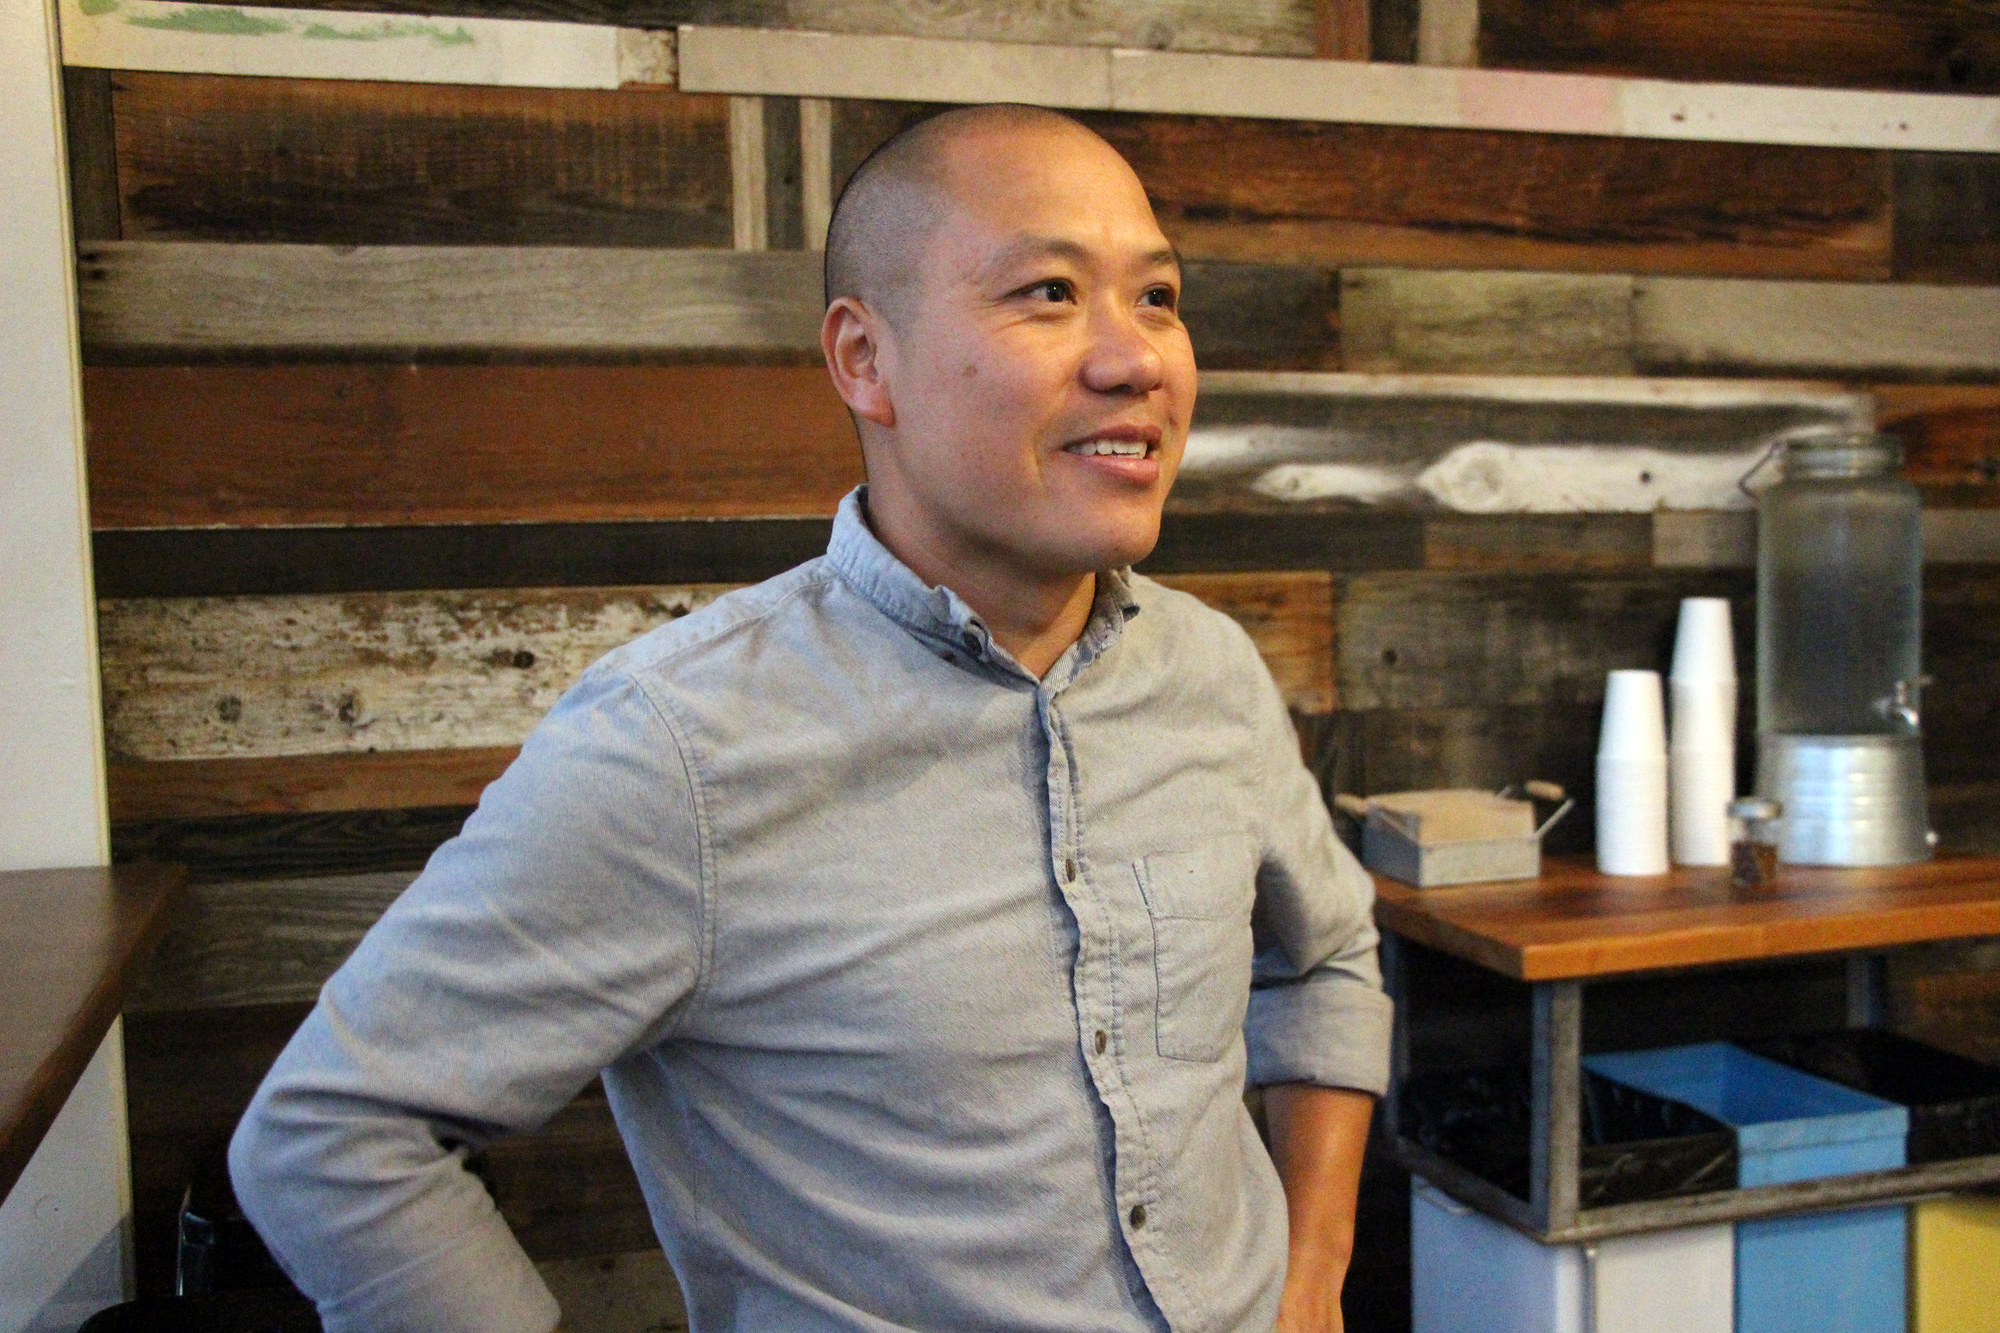 Owner Viet Nguyen at Bare Knuckle Pizza's grand opening.